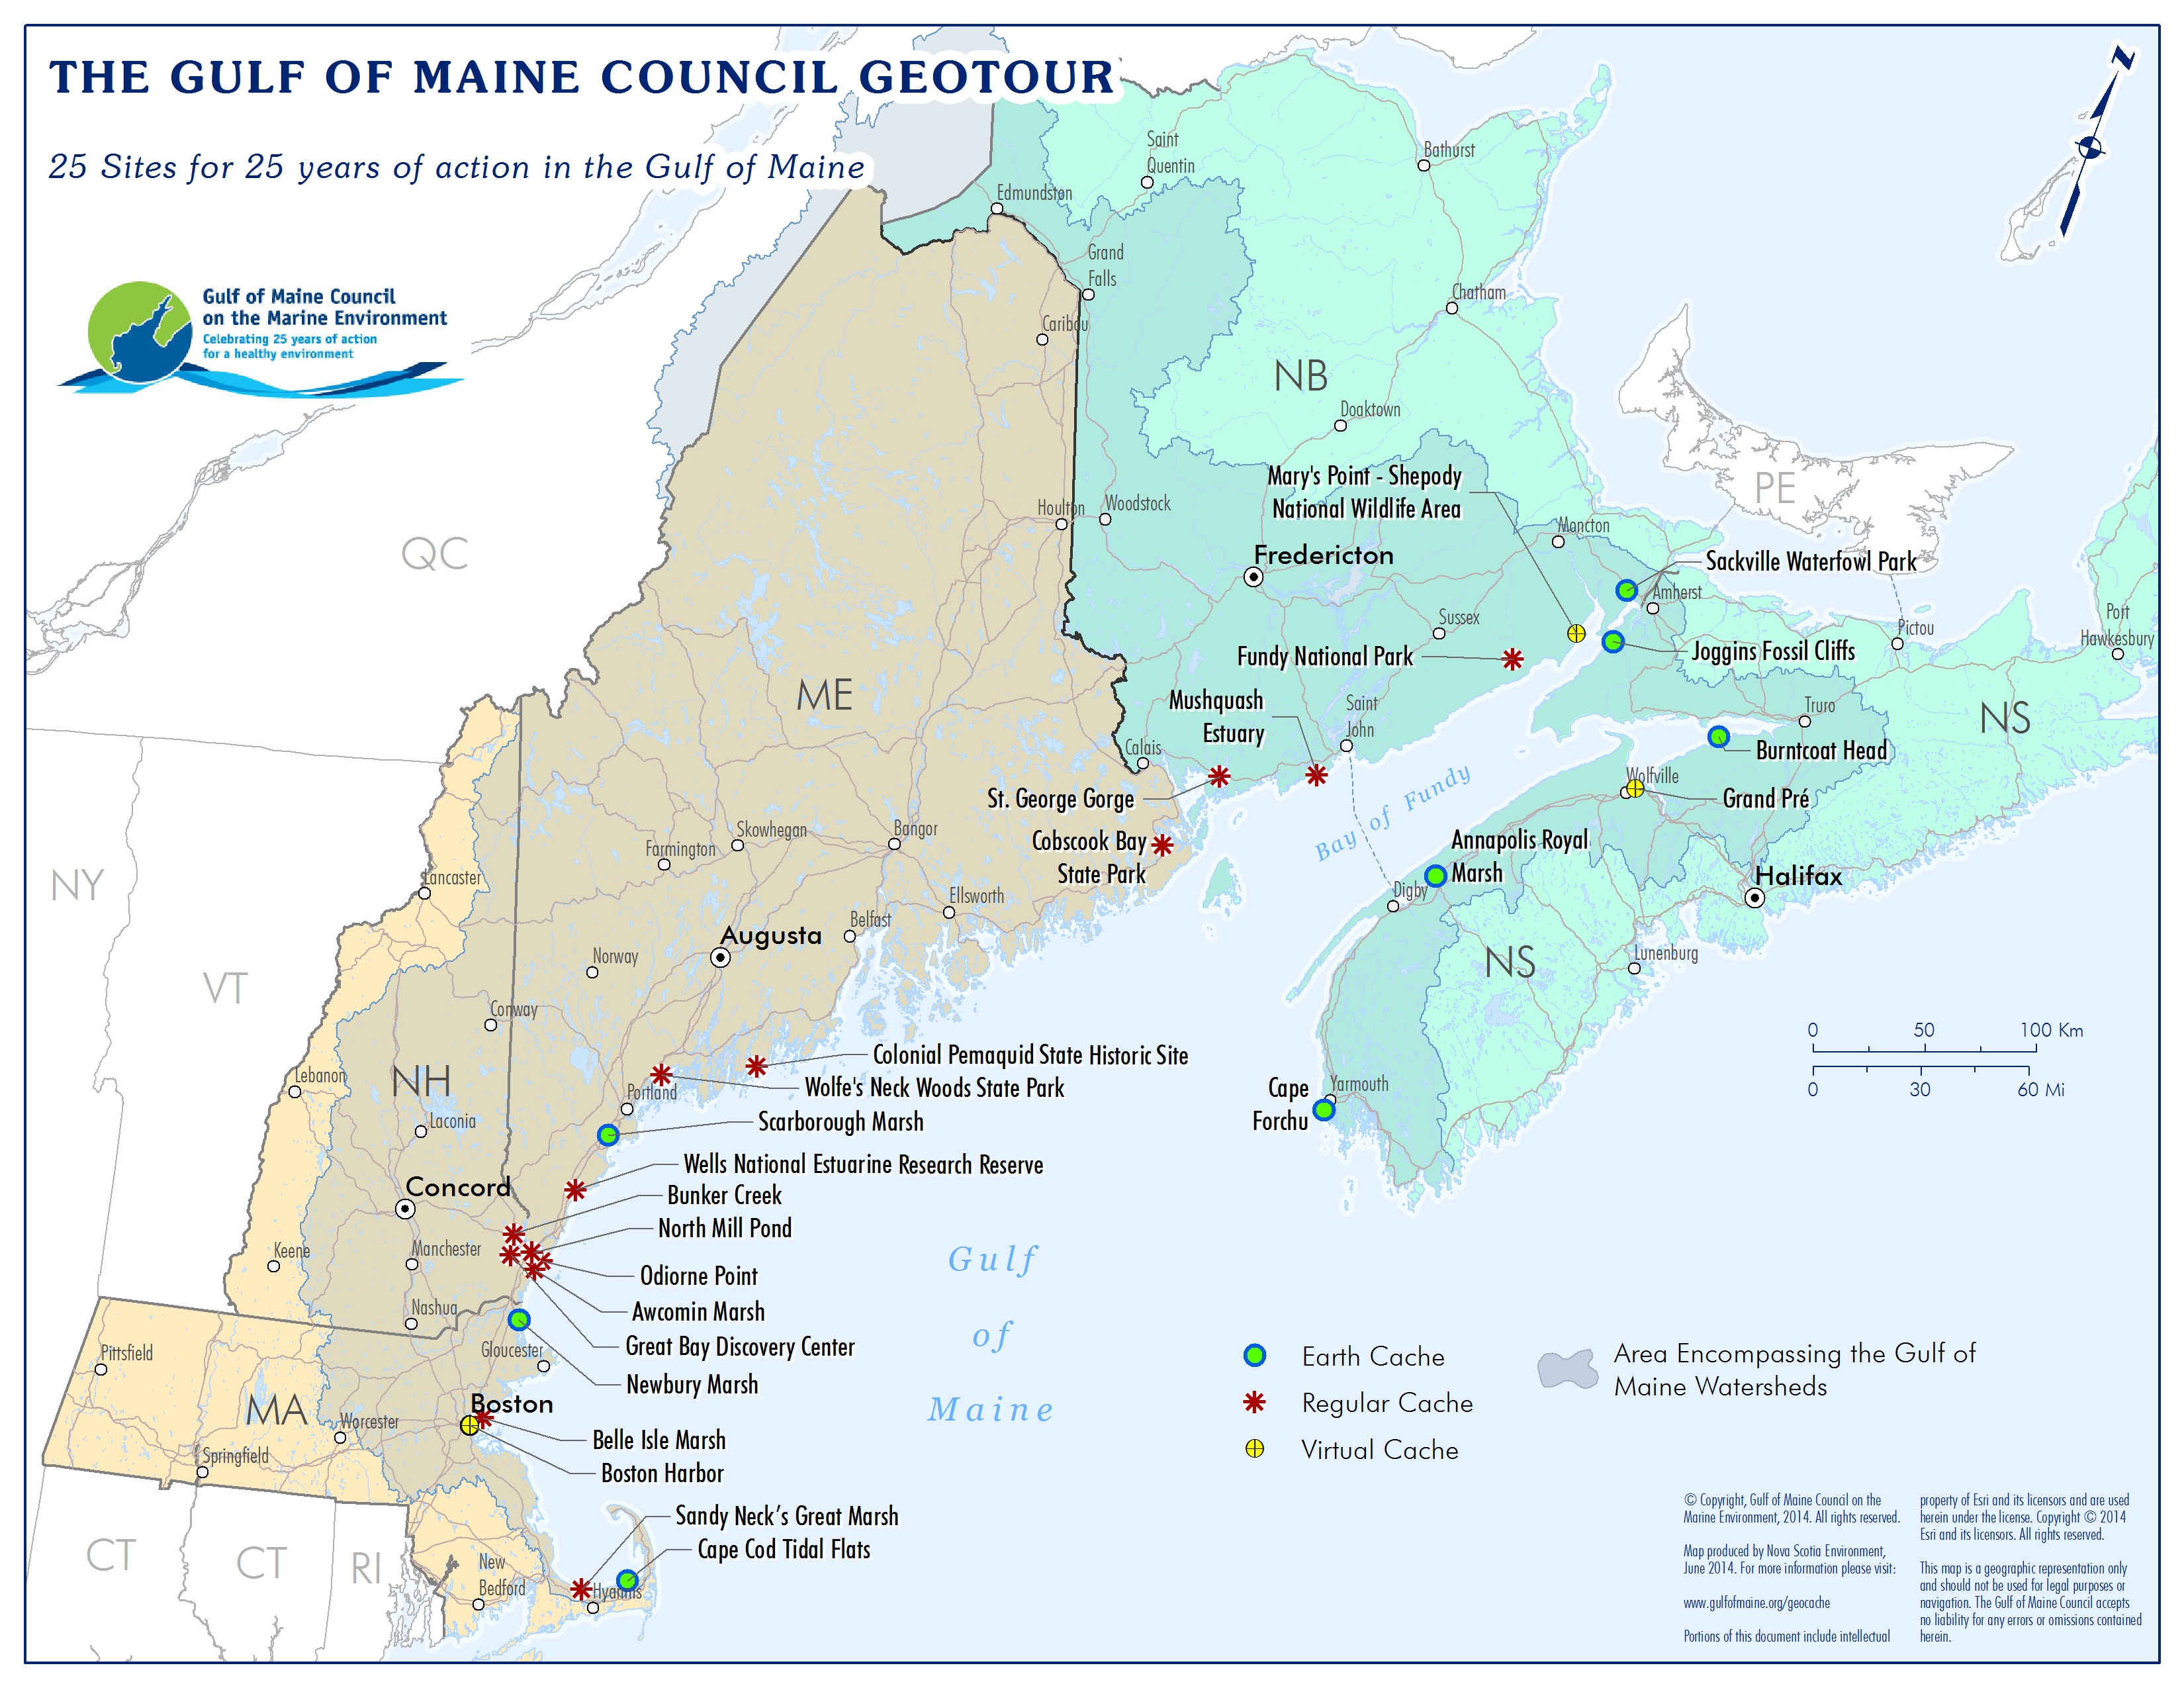 download the geotour map only (pdf  mb). geocache  gulf of maine council on the marine environment